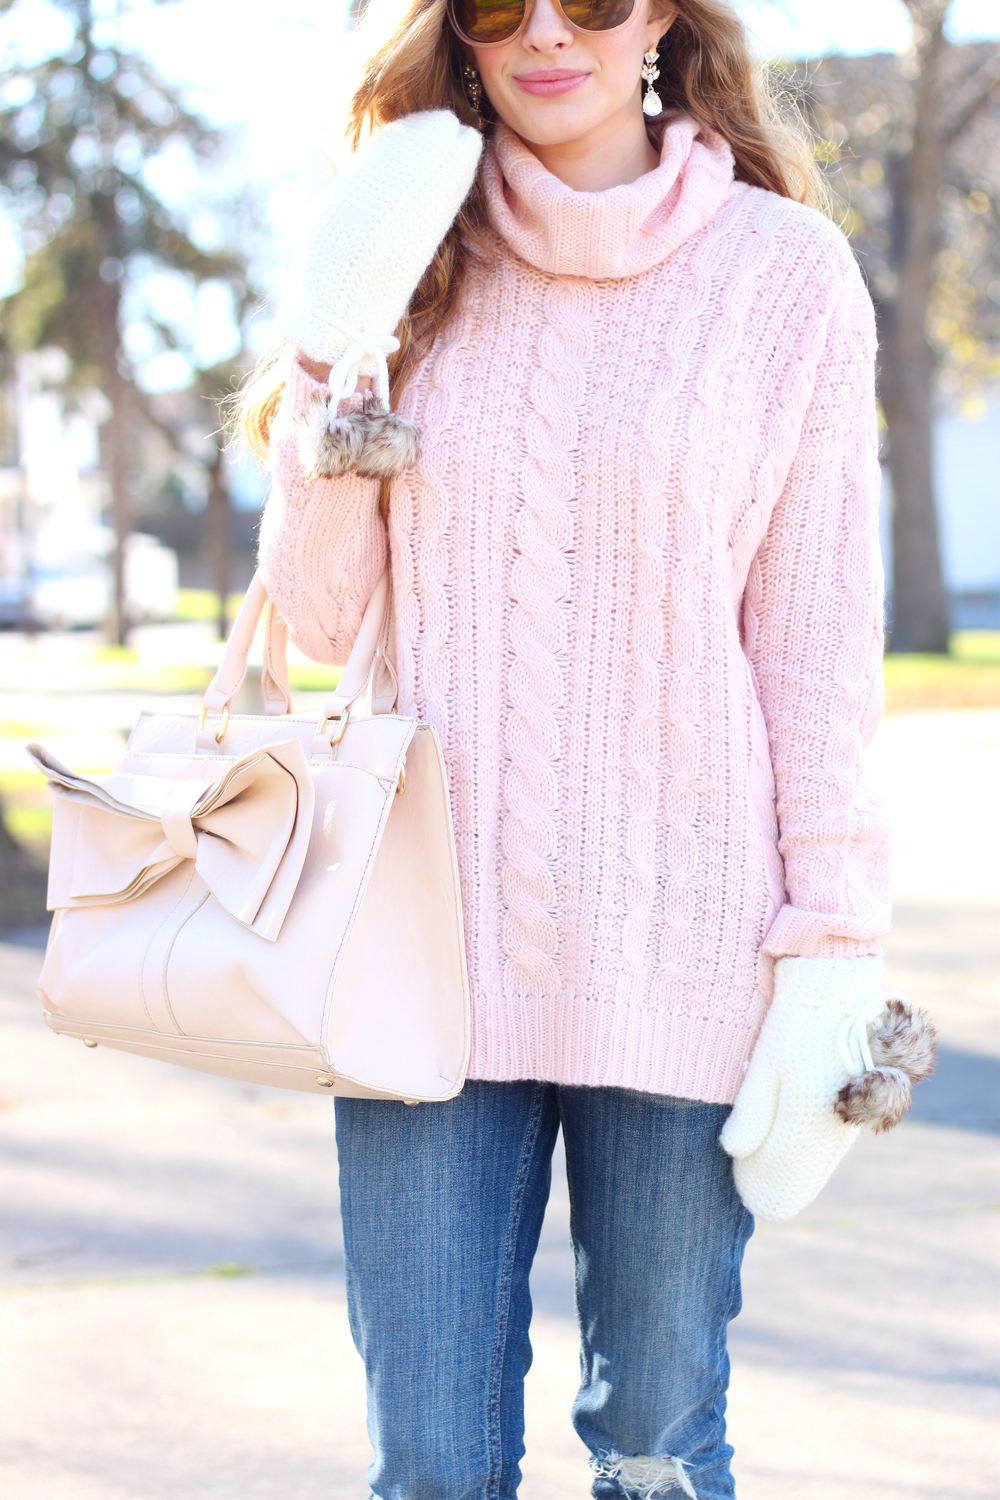 Blush Turtleneck and Pom-Poms- Enchanting Elegance